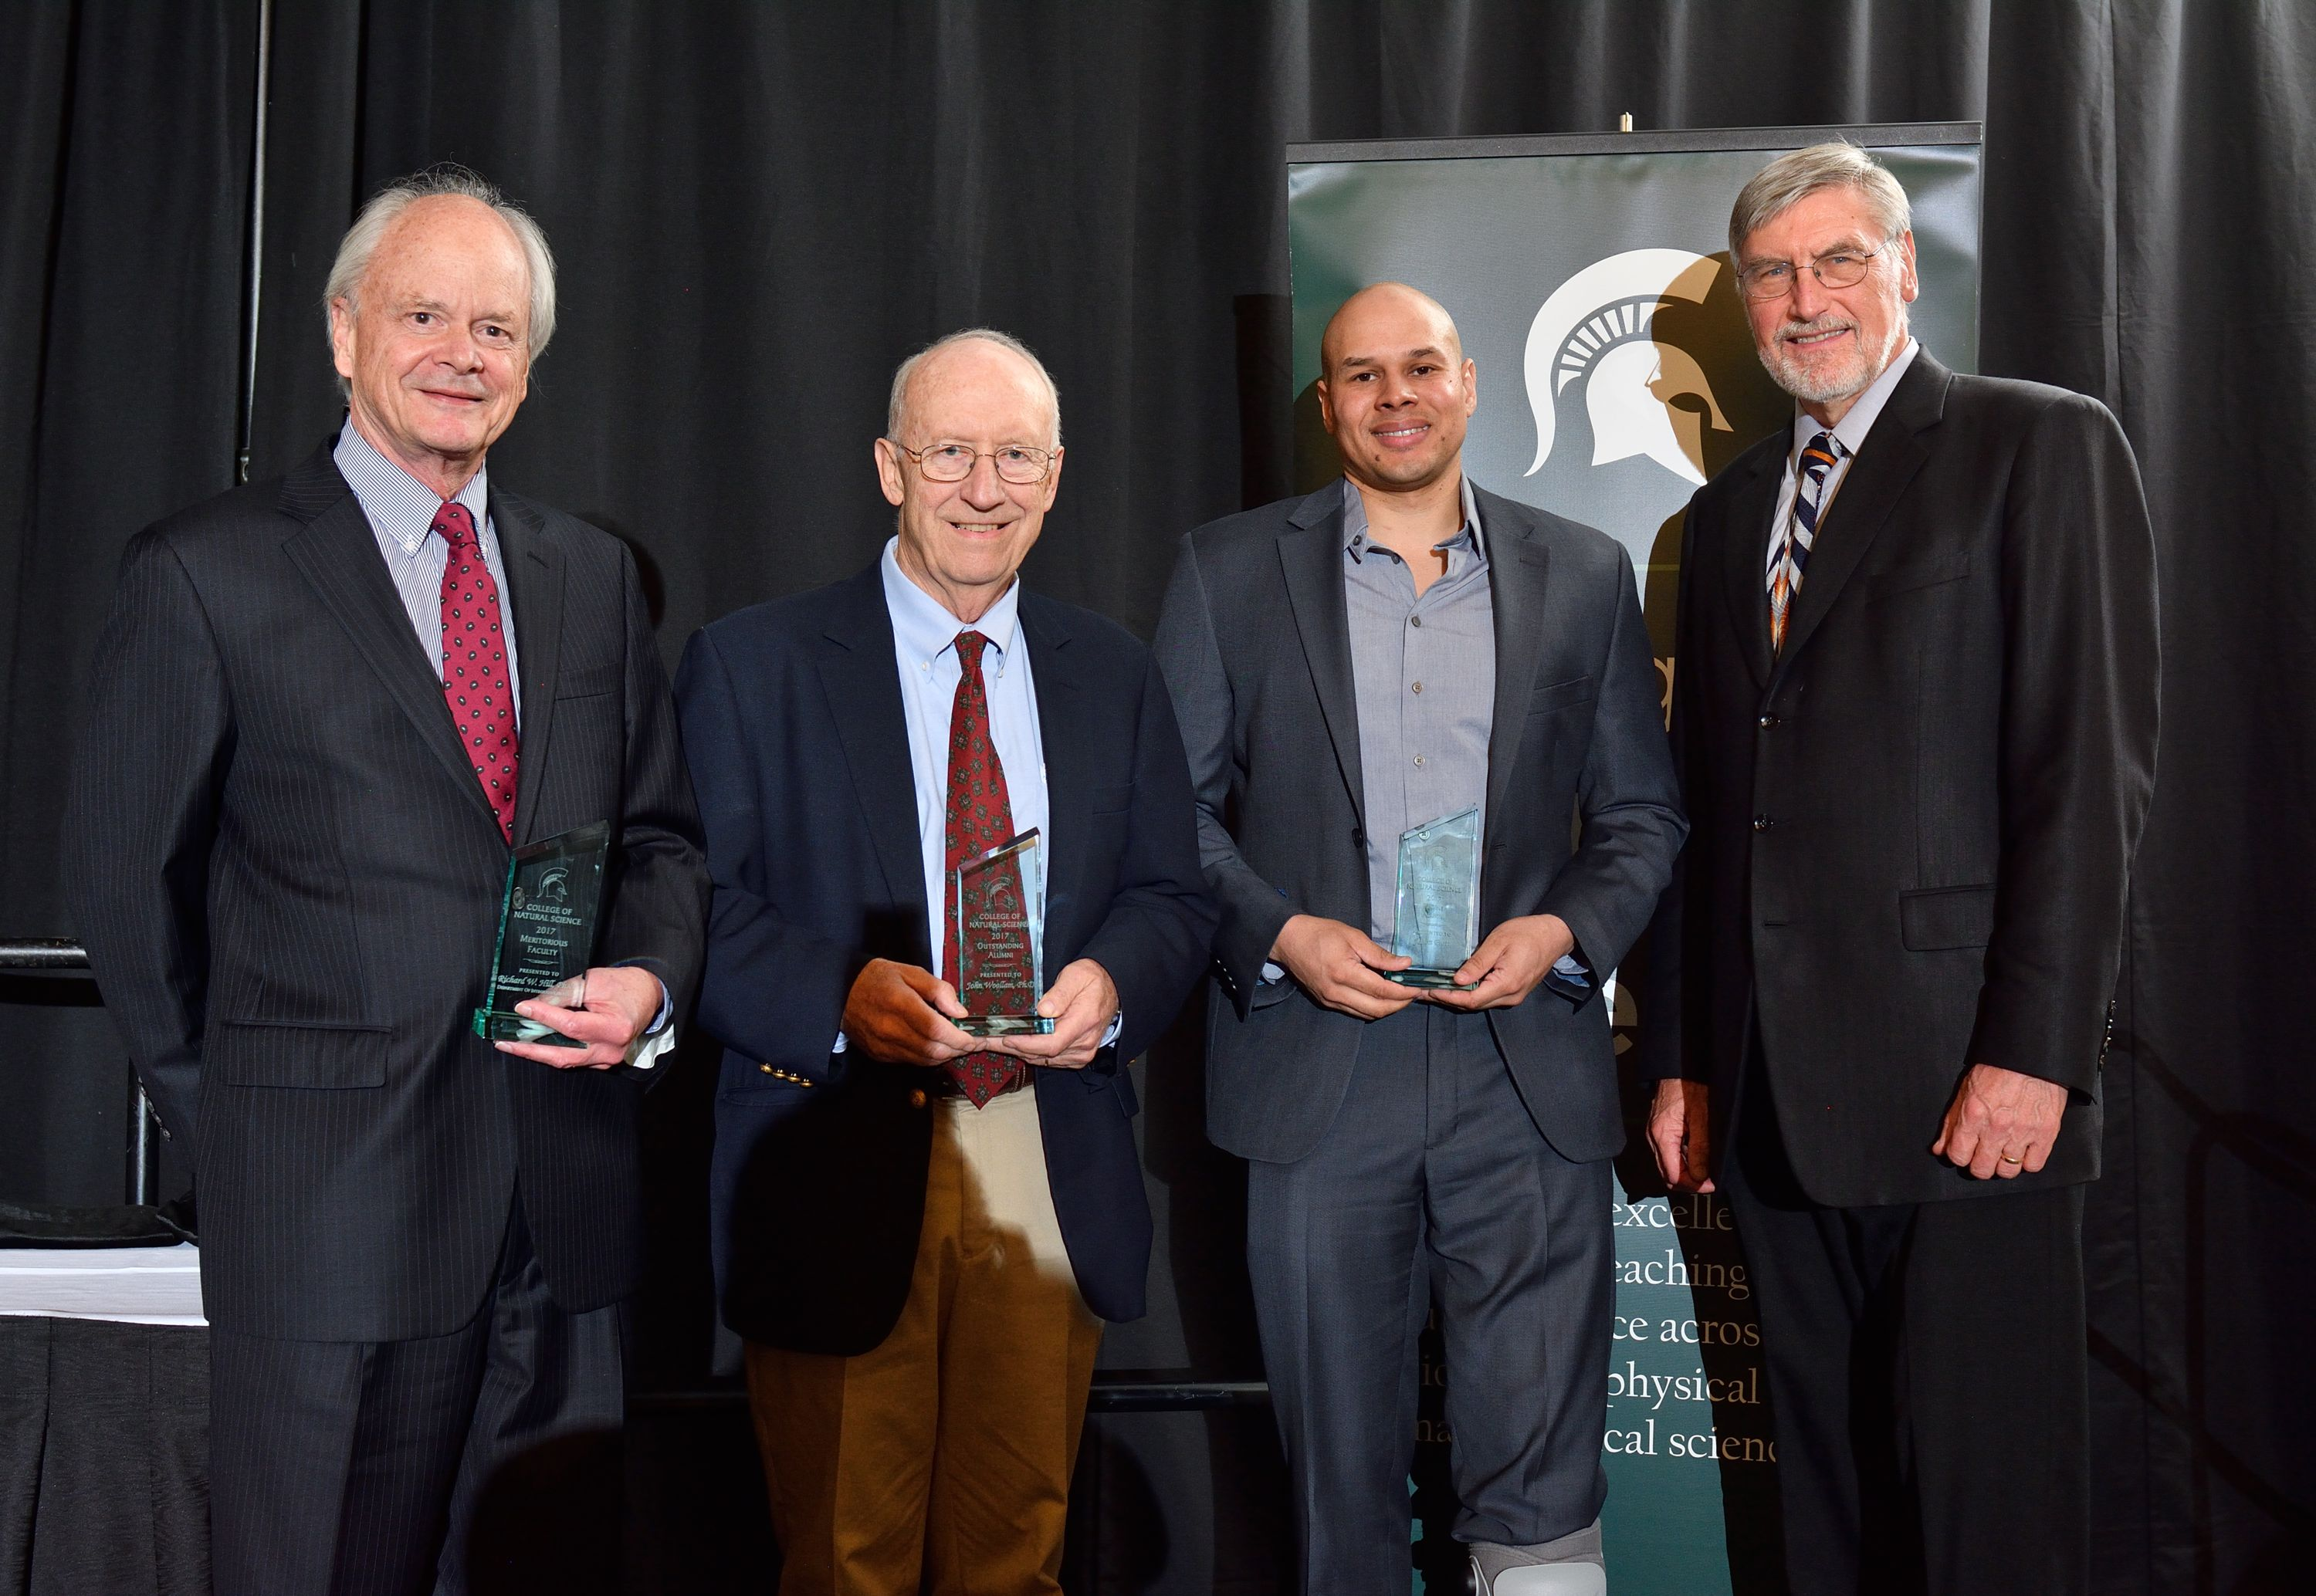 (L to R): Richard Hill, Meritorious Faculty Award winner; John Woolham, Outstanding Alumni Award winner; and Jason Pratt, Recent Alumni Award winner, pose with NatSci Dean R. James Kirkpatrick following this year's NatSci Alumni Awards dinner.